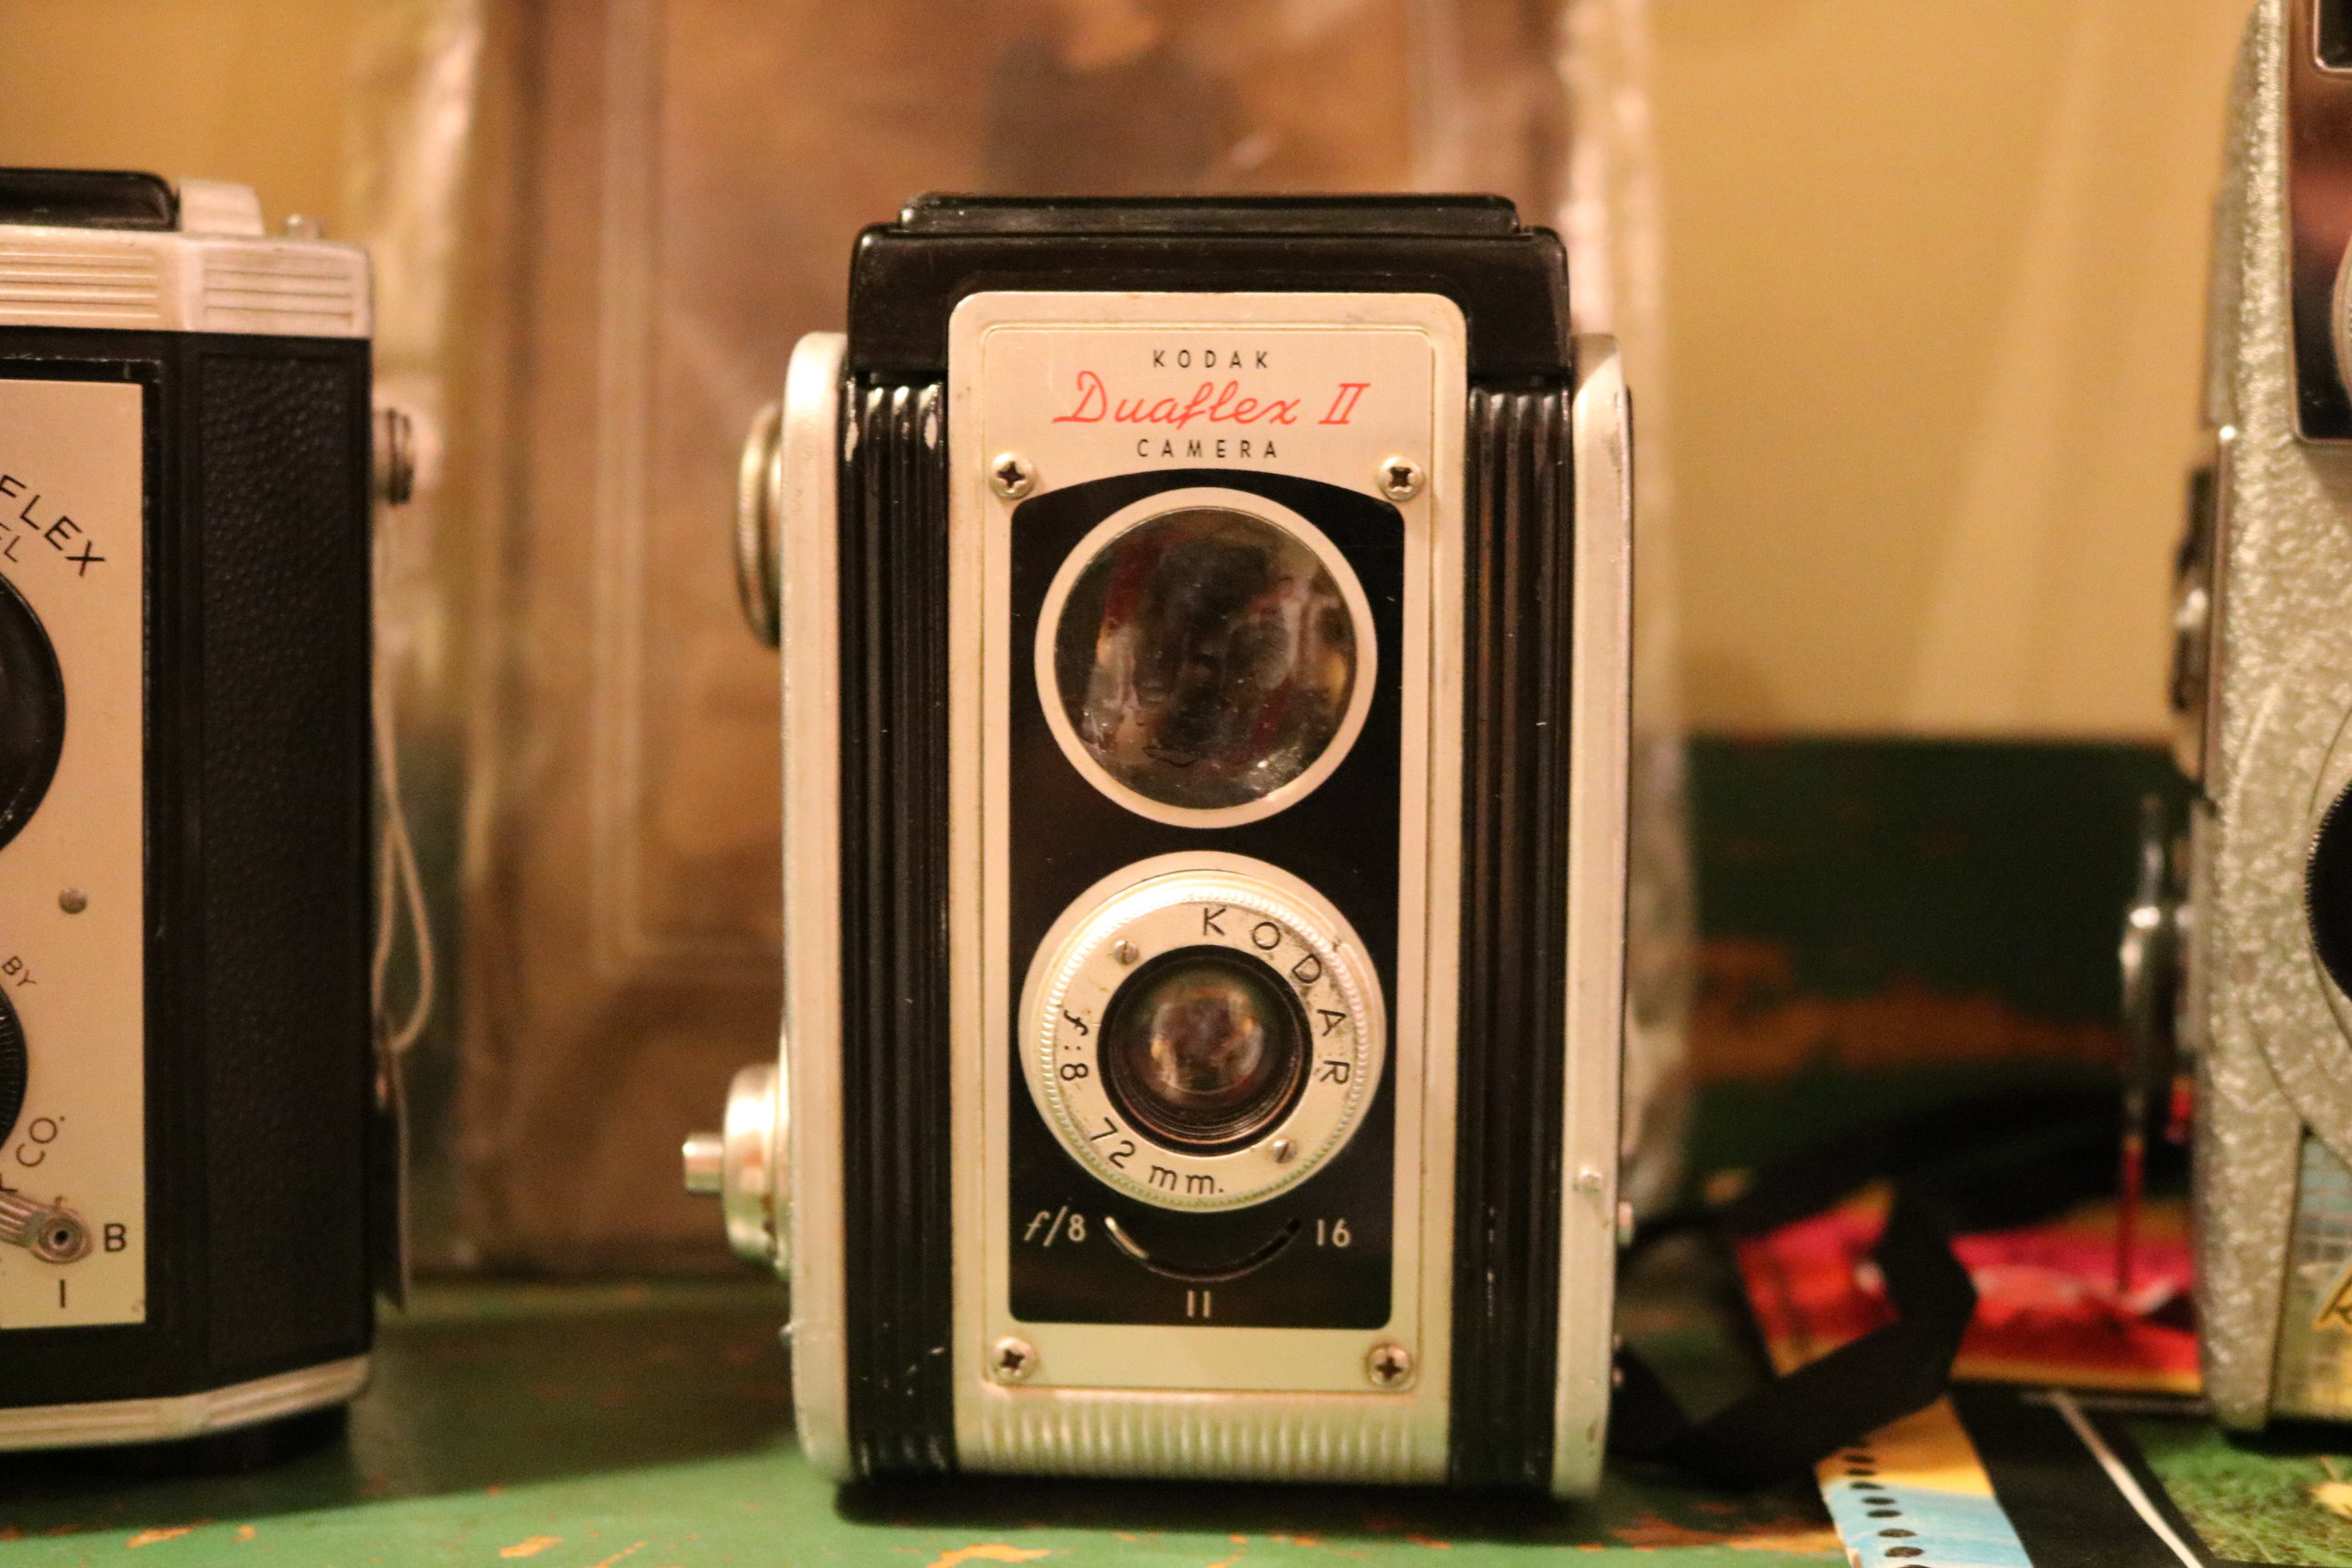 A Kodak Duaflex II camera for sale in the collection of cameras throughout the store.